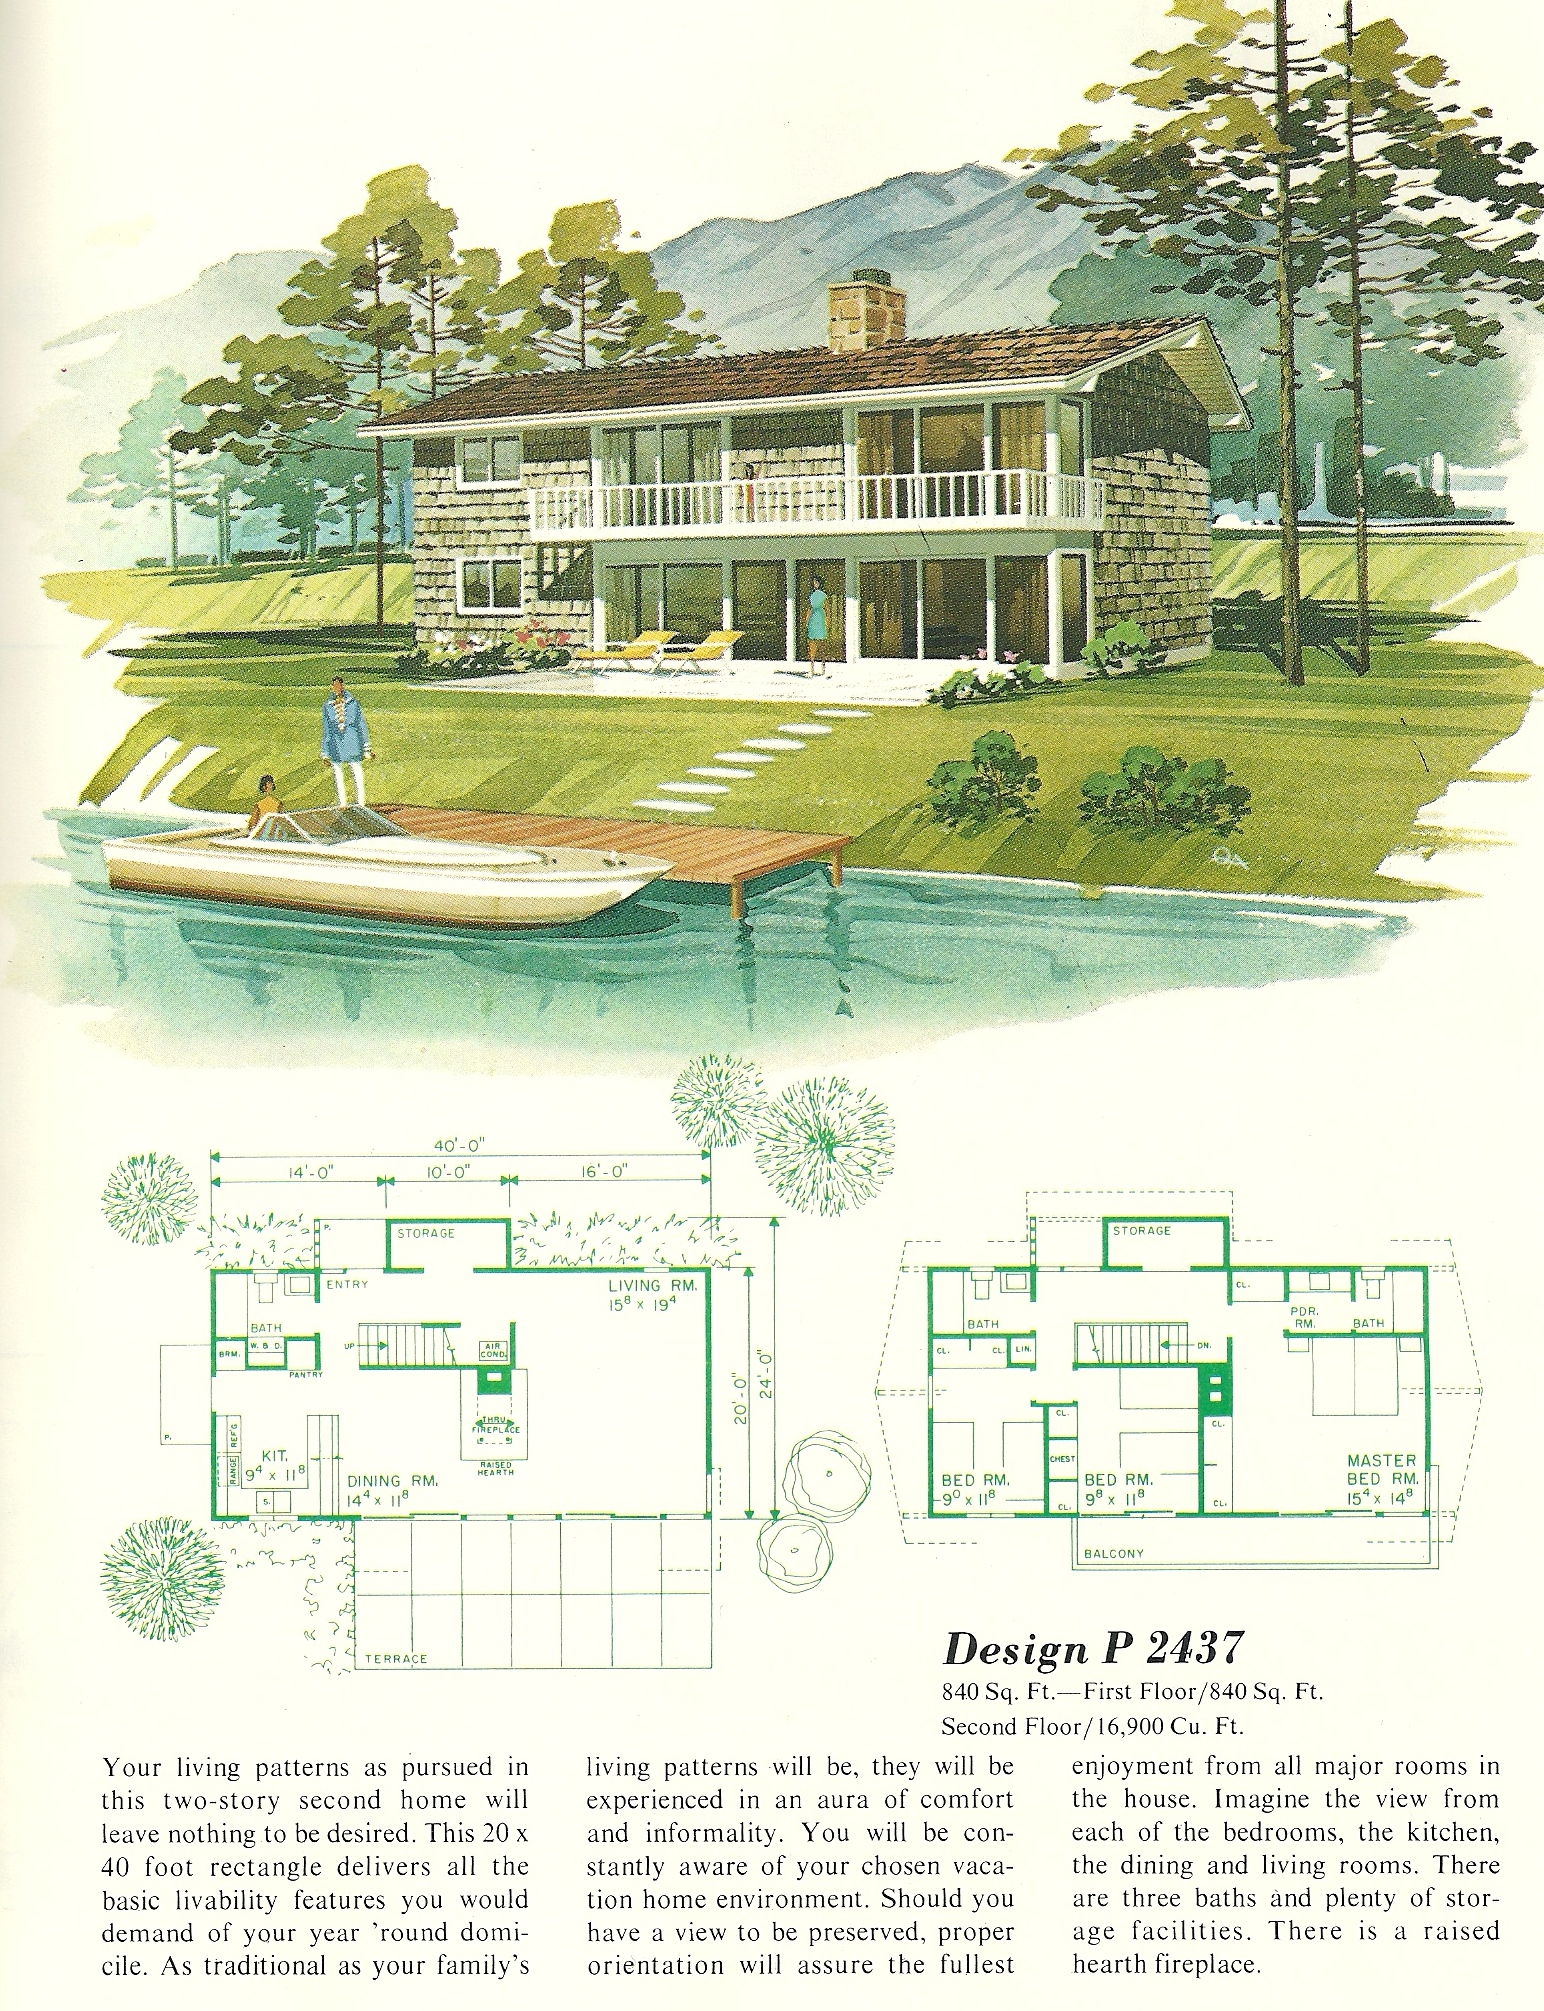 Vintage House Plans Vacation Homes 2437 Antique Alter Ego